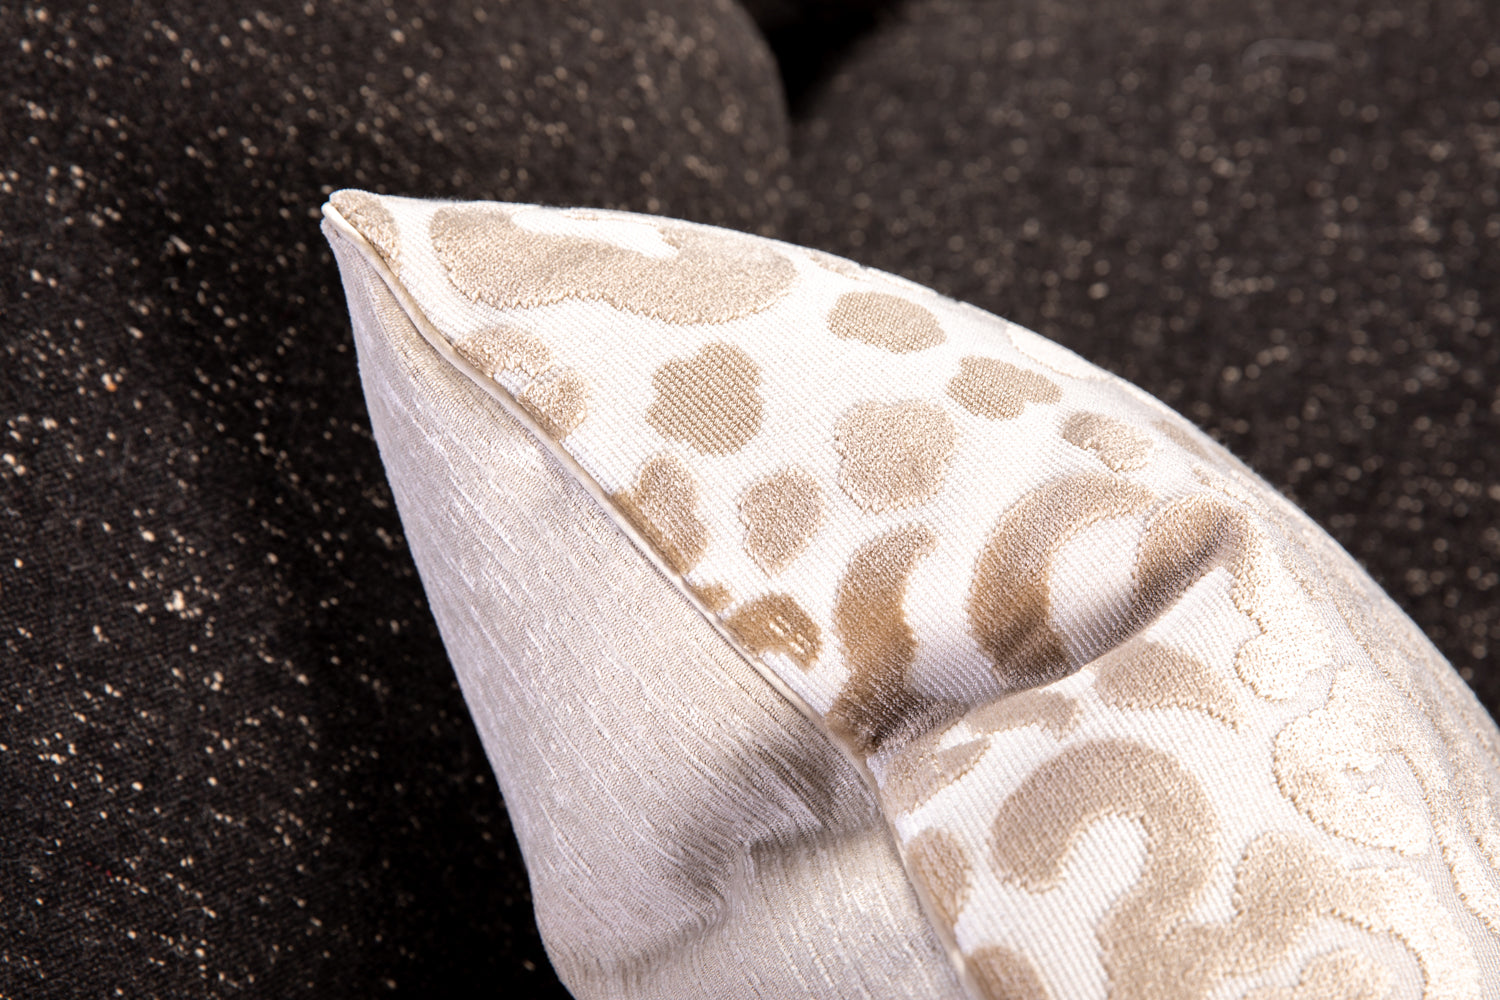 ffabb toss pillows, RADG & Maxwell fabrics, animal print with piping trim